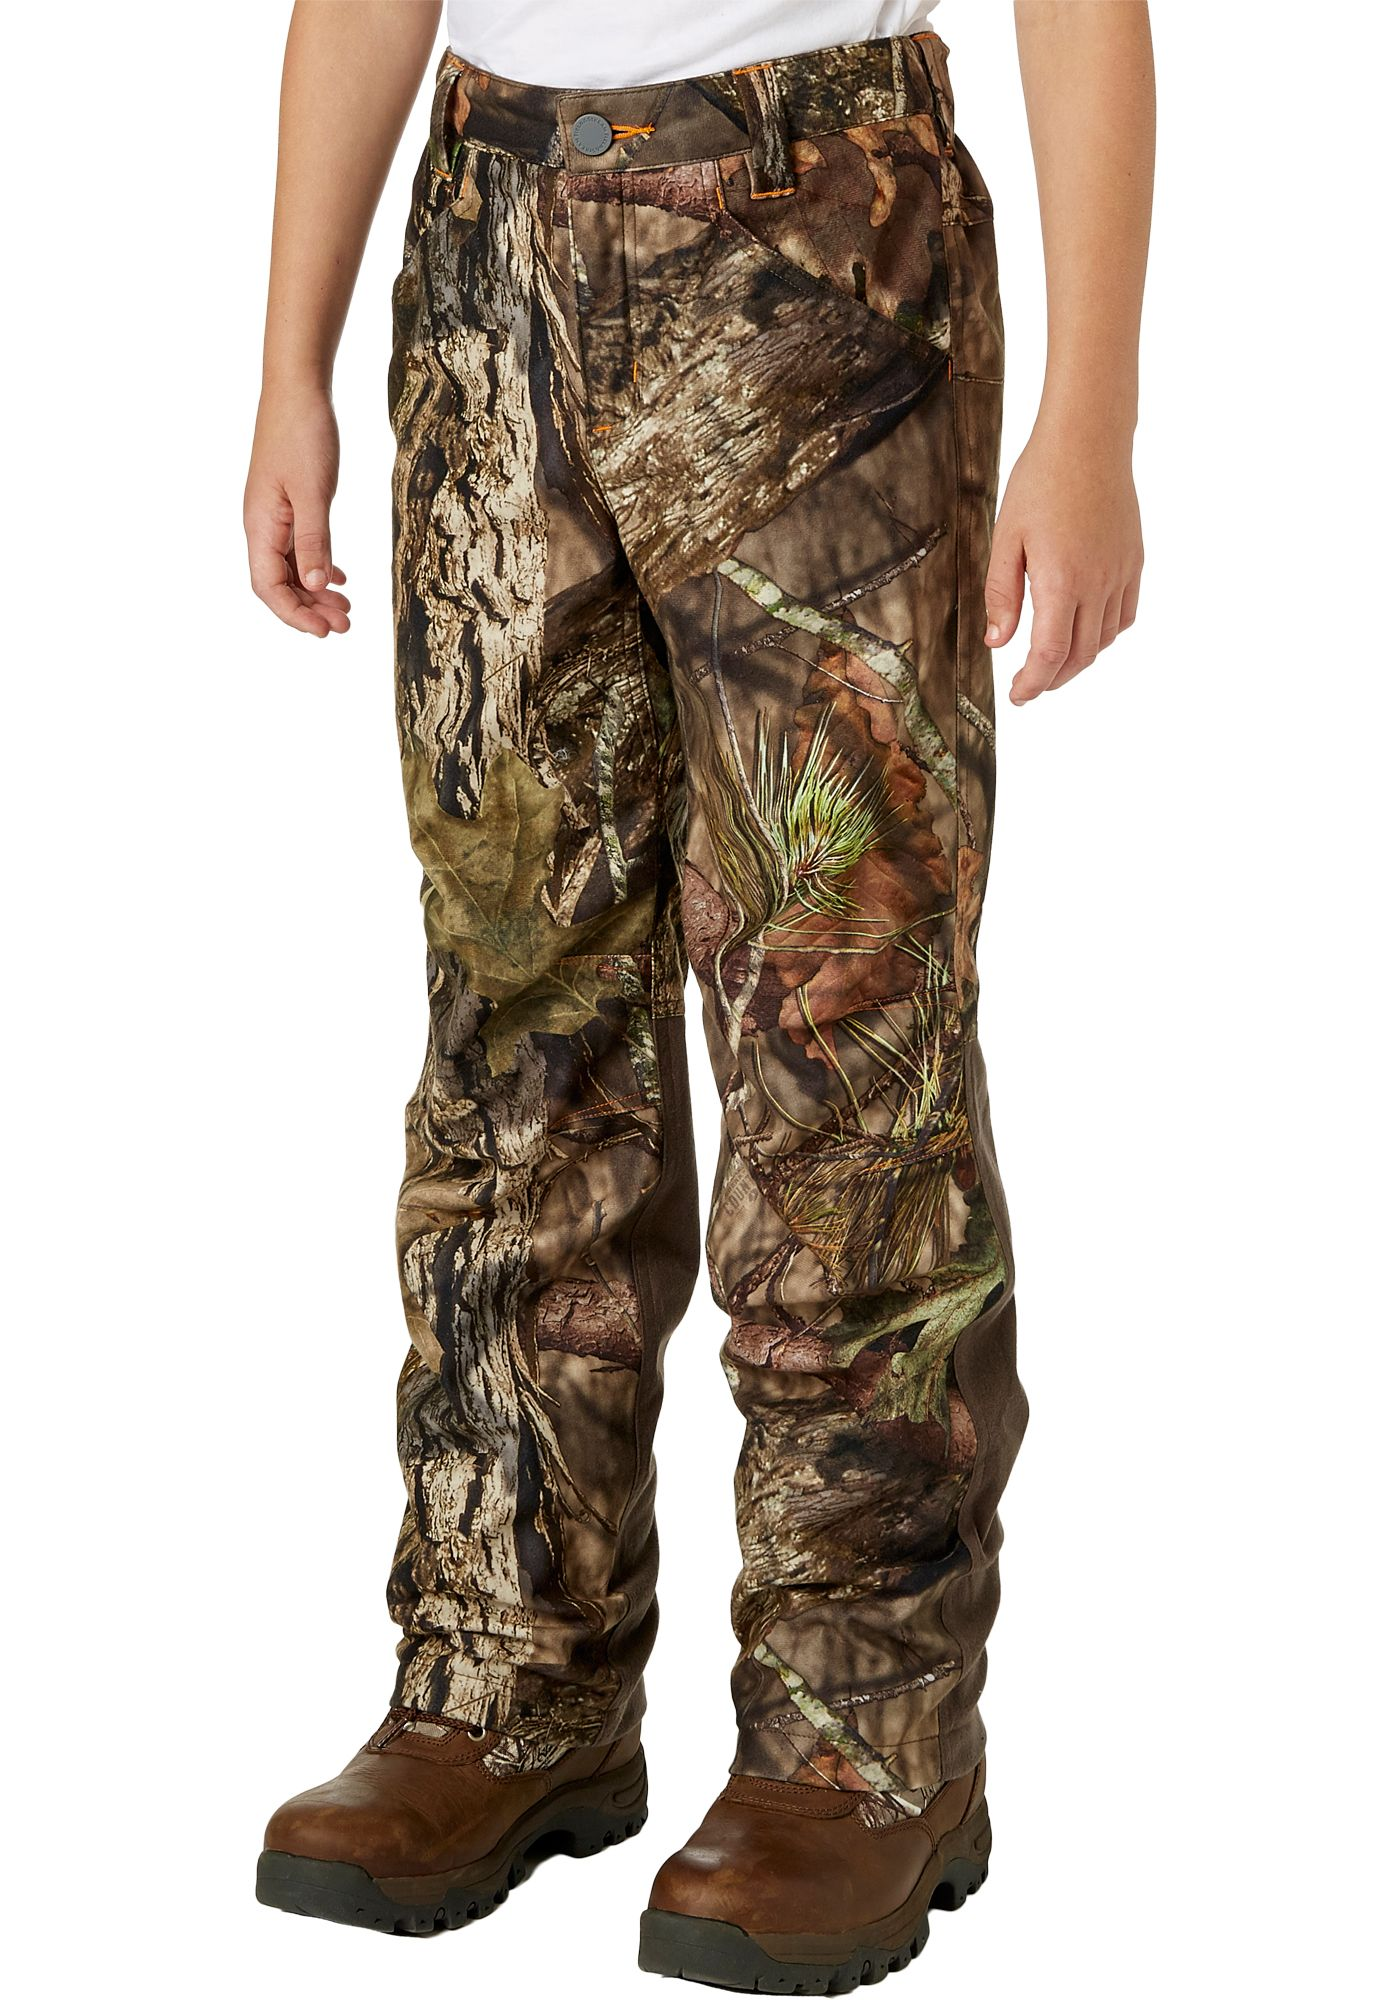 Field & Stream Youth Every Hunt Hunting Pants